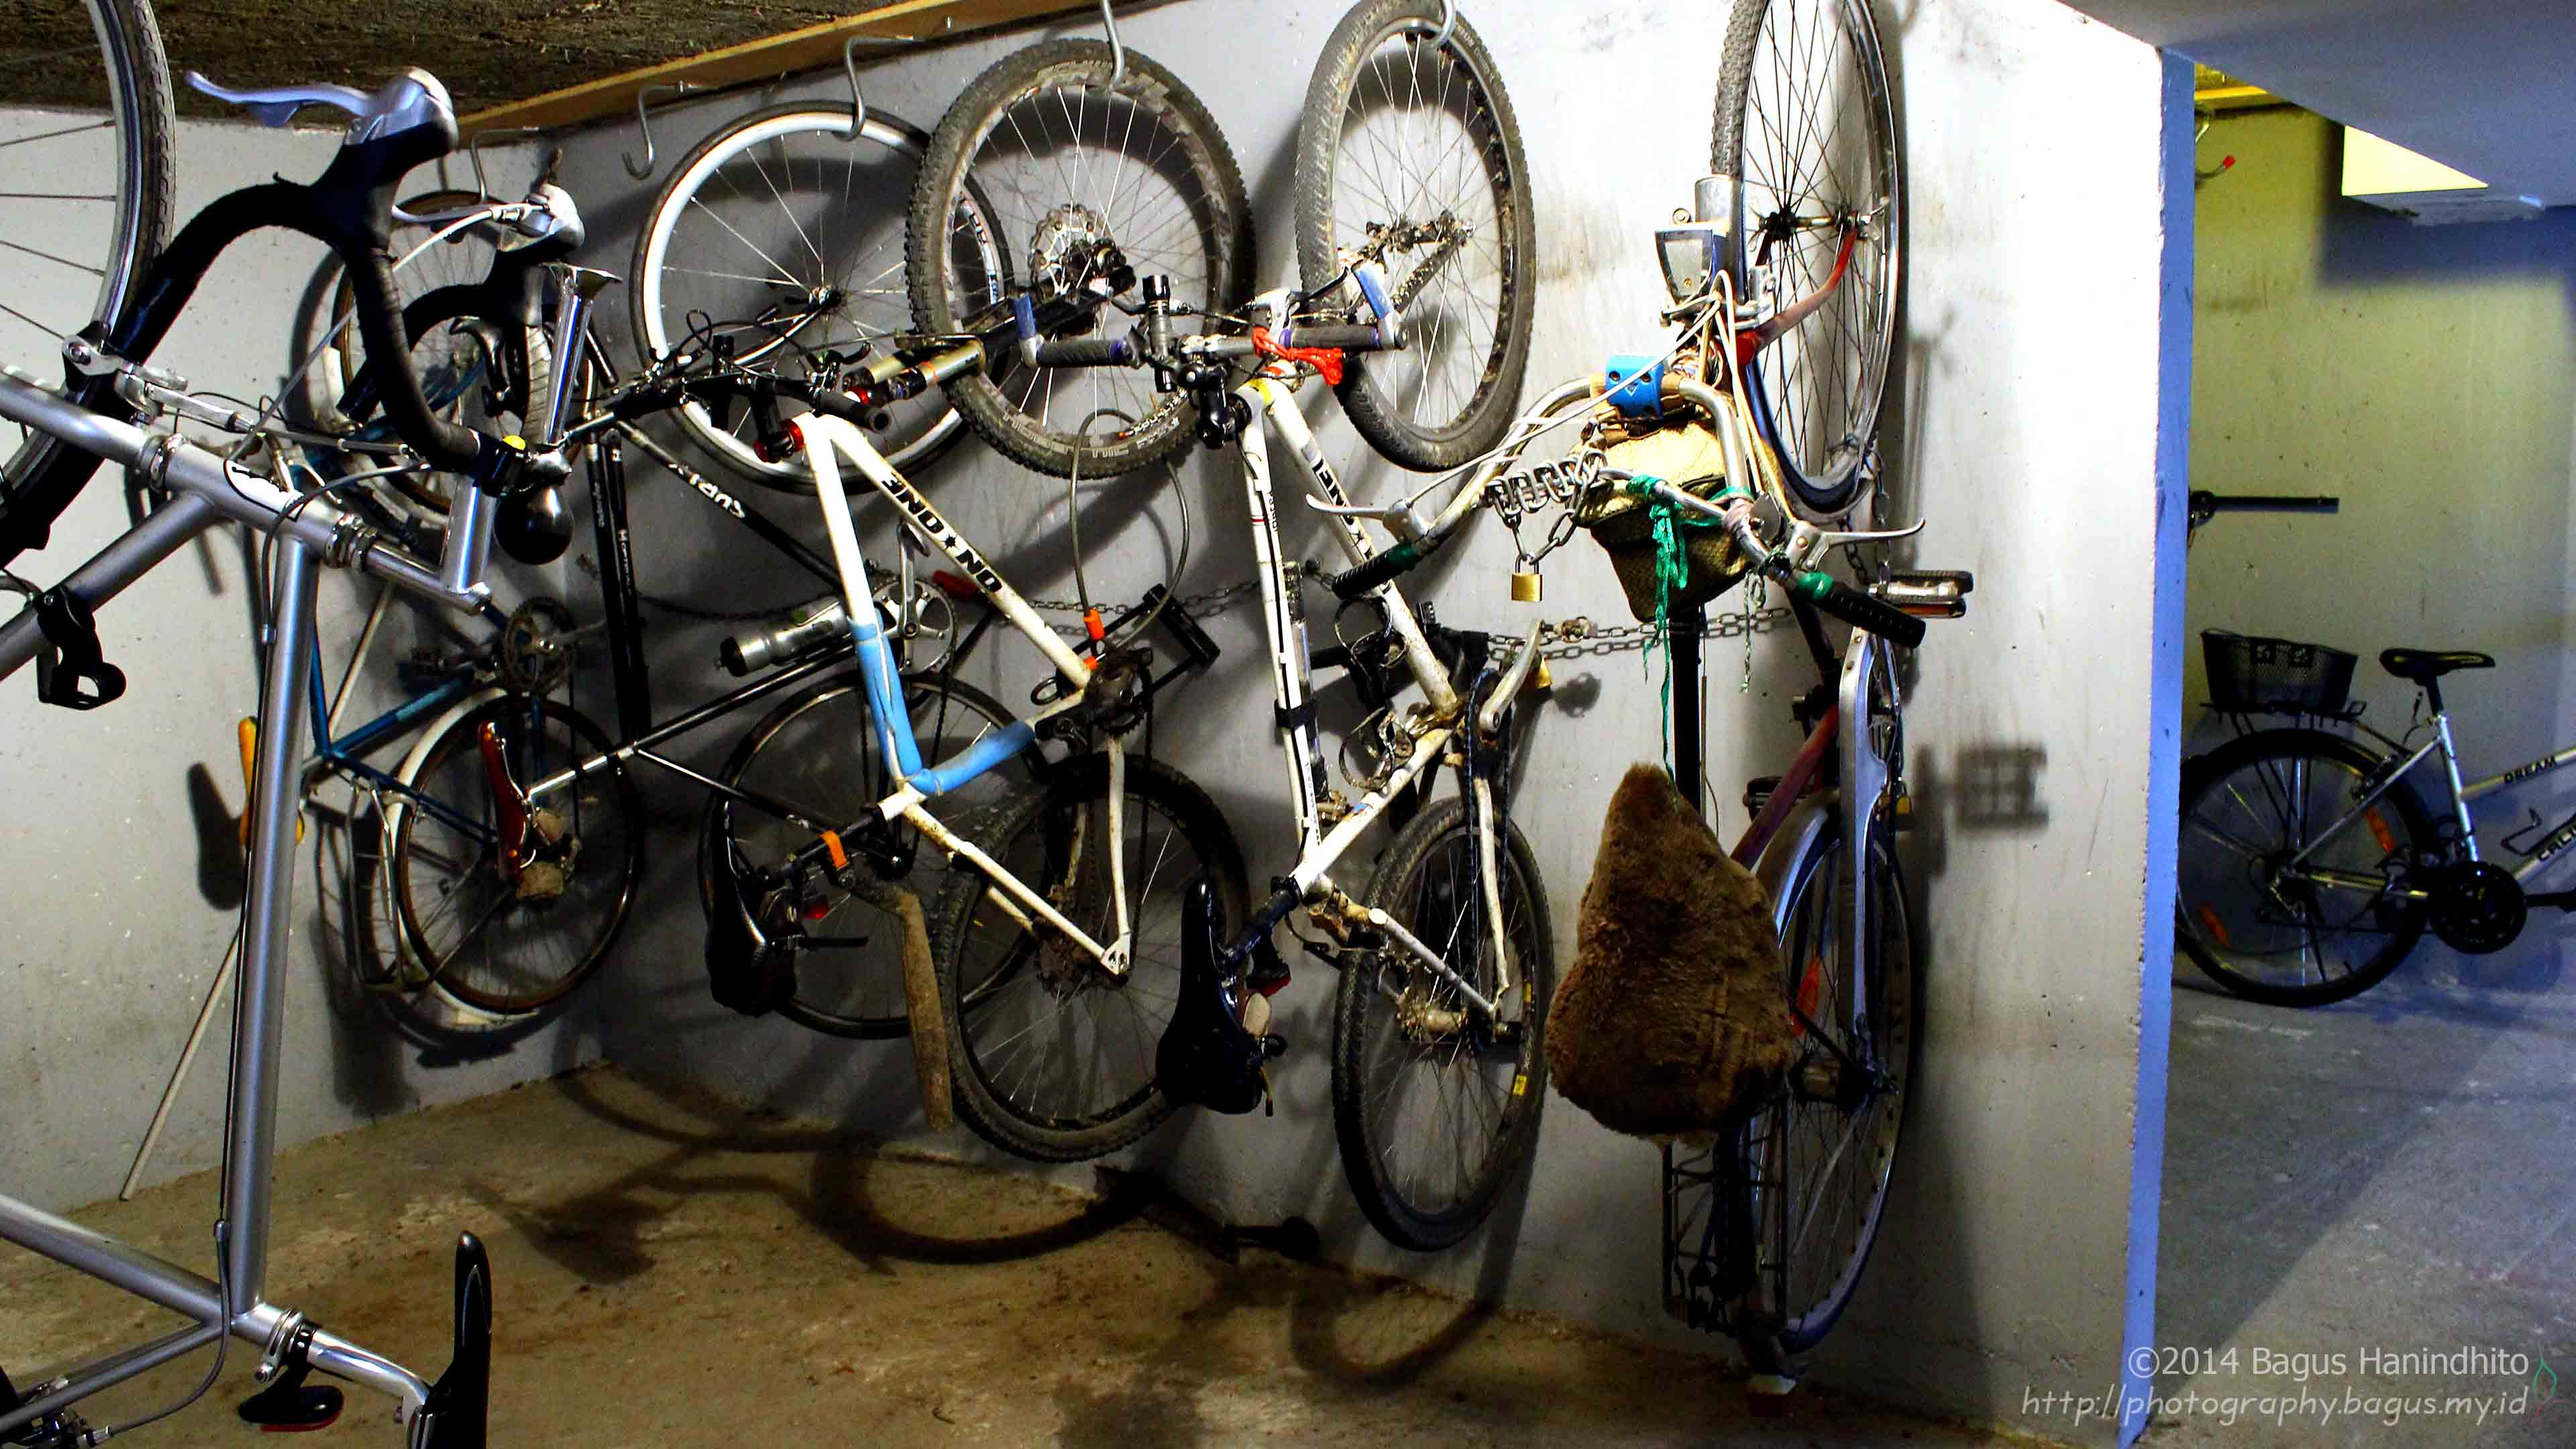 The bicycle garage at CERN Saint Genis Hostel. To save the space, the bicycle were parked vertically.